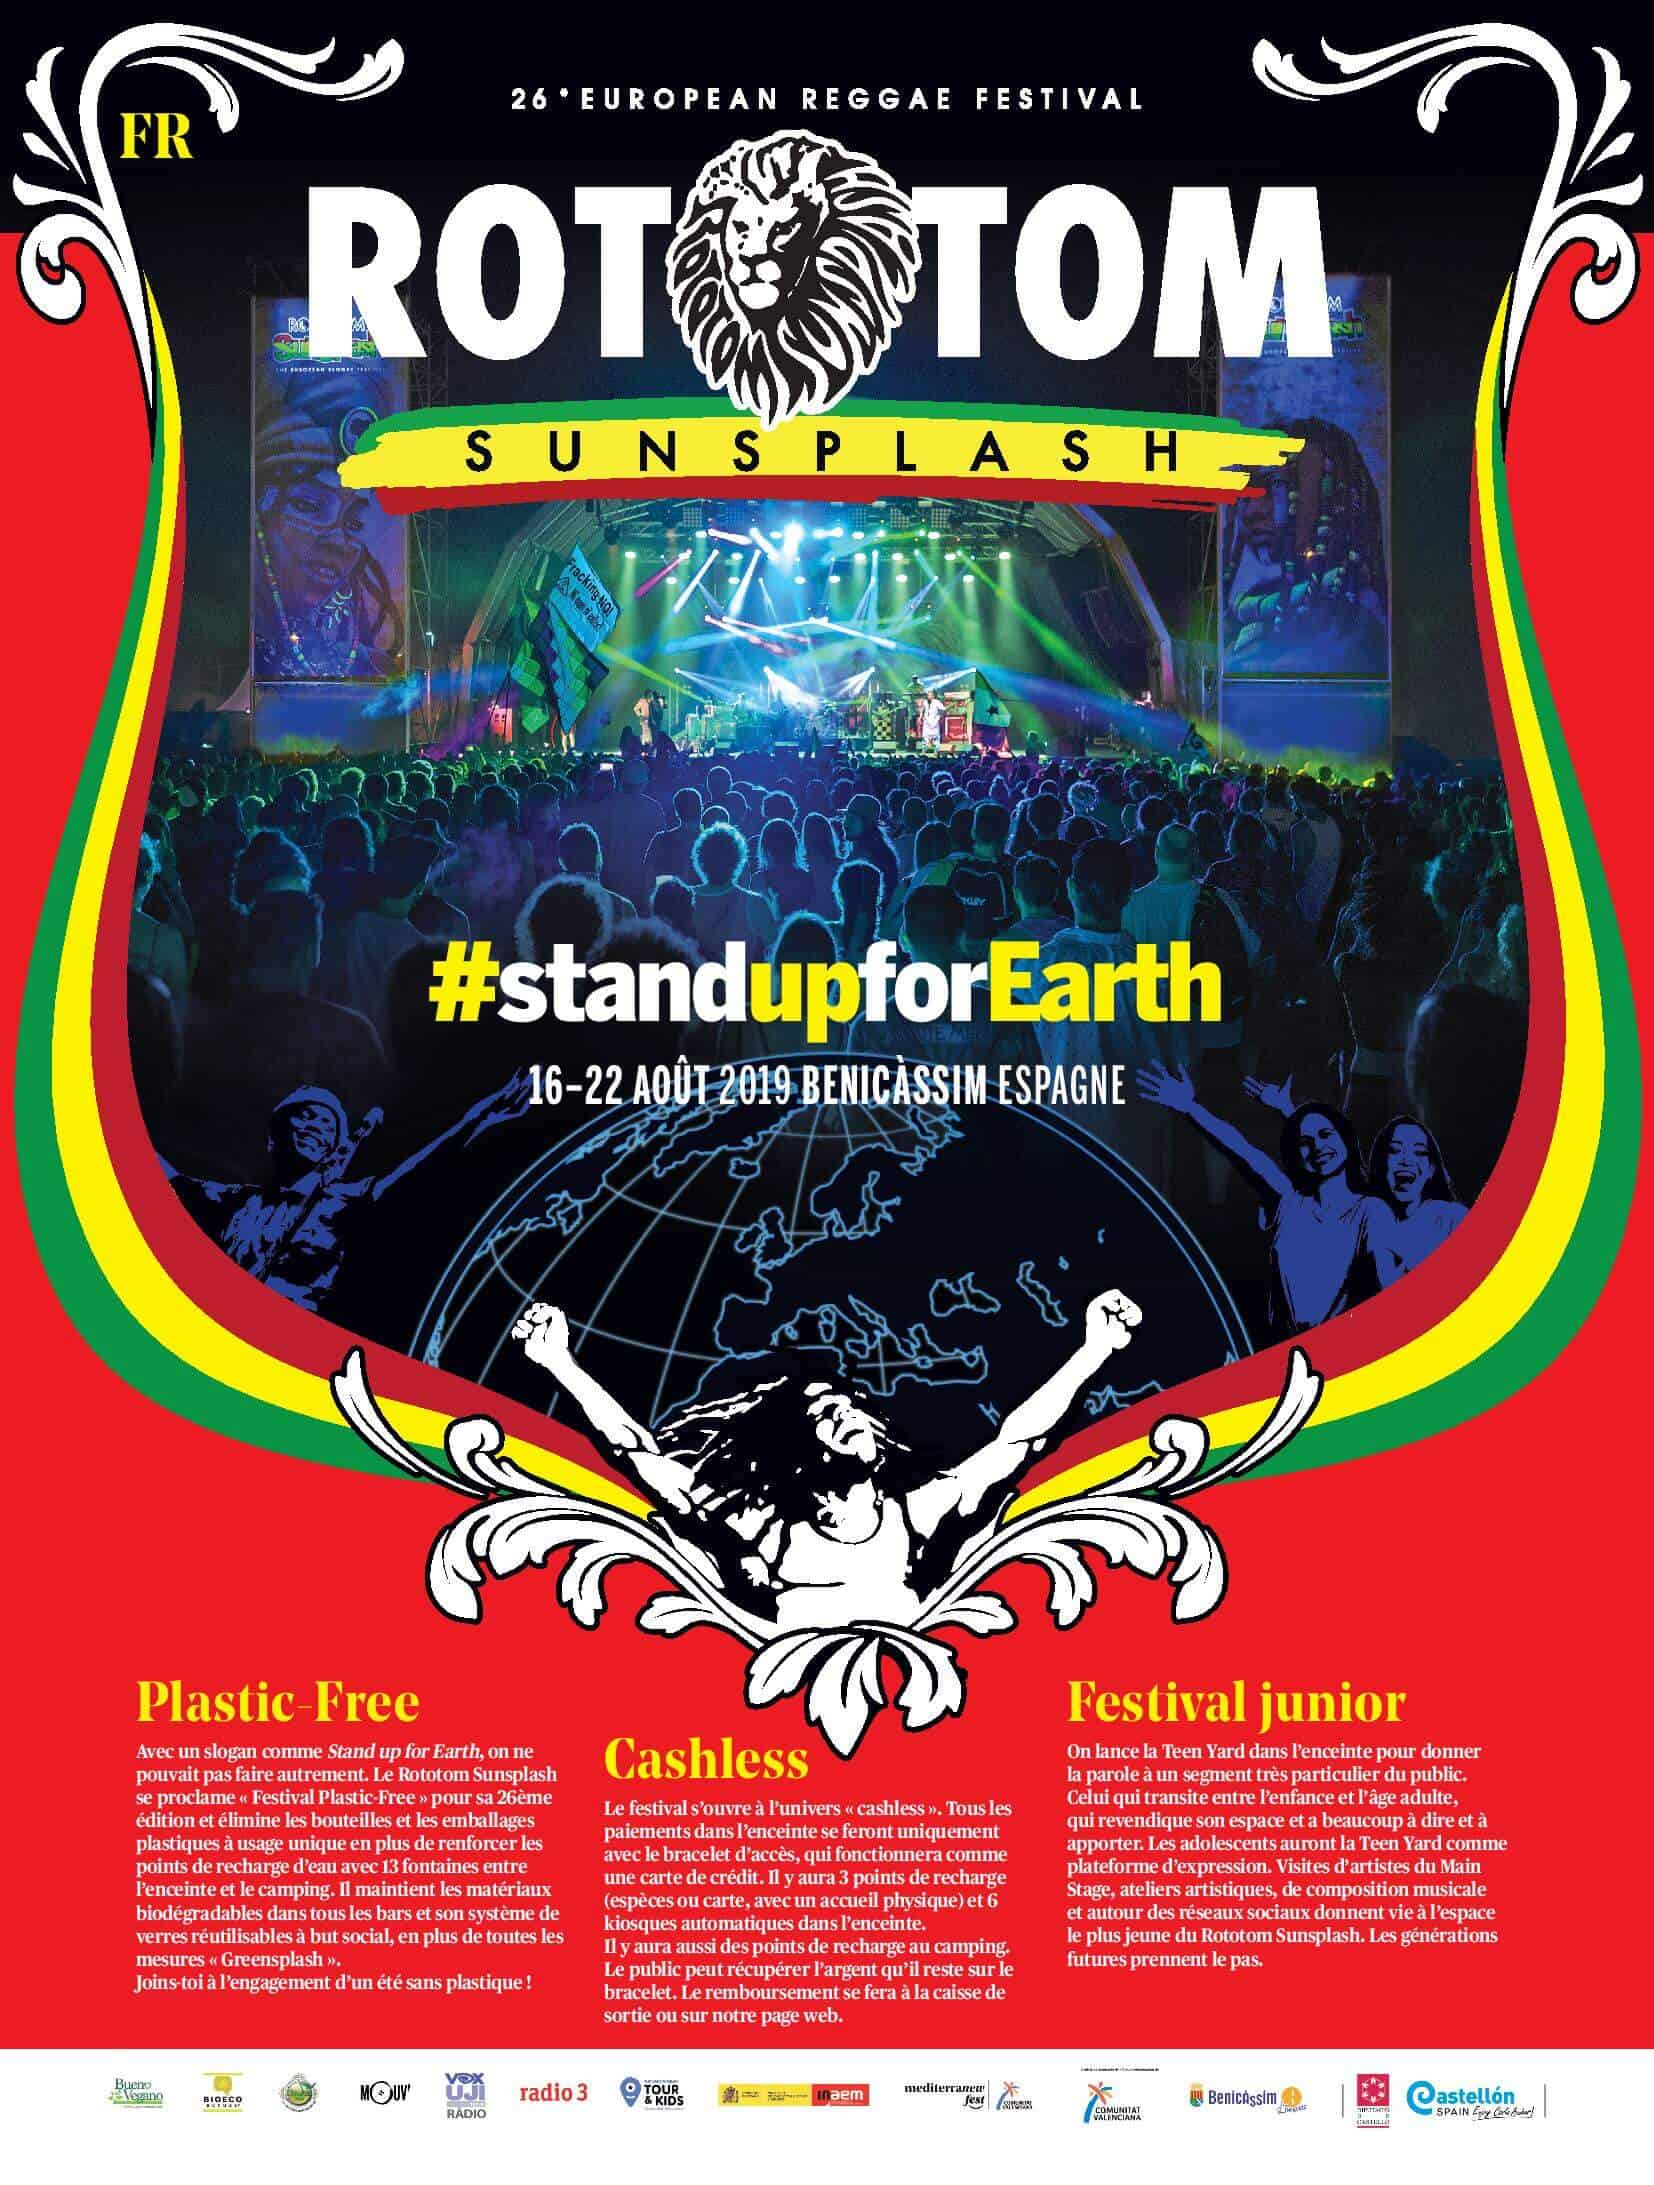 Rototom Sunsplash European Reggae Festival | Music, culture